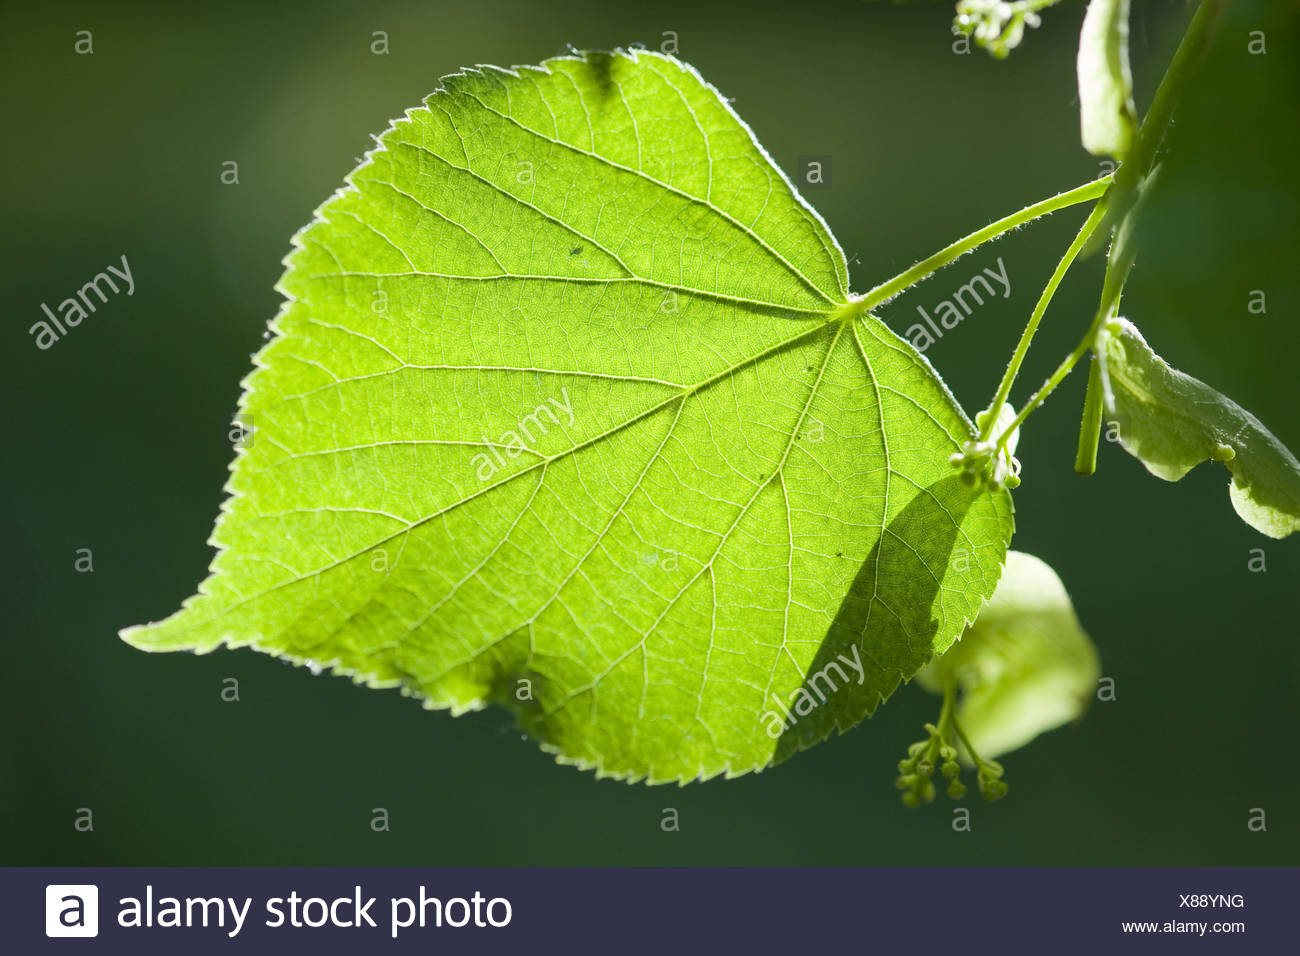 large-leaved linden, tilia platyphyllos Stock Photo